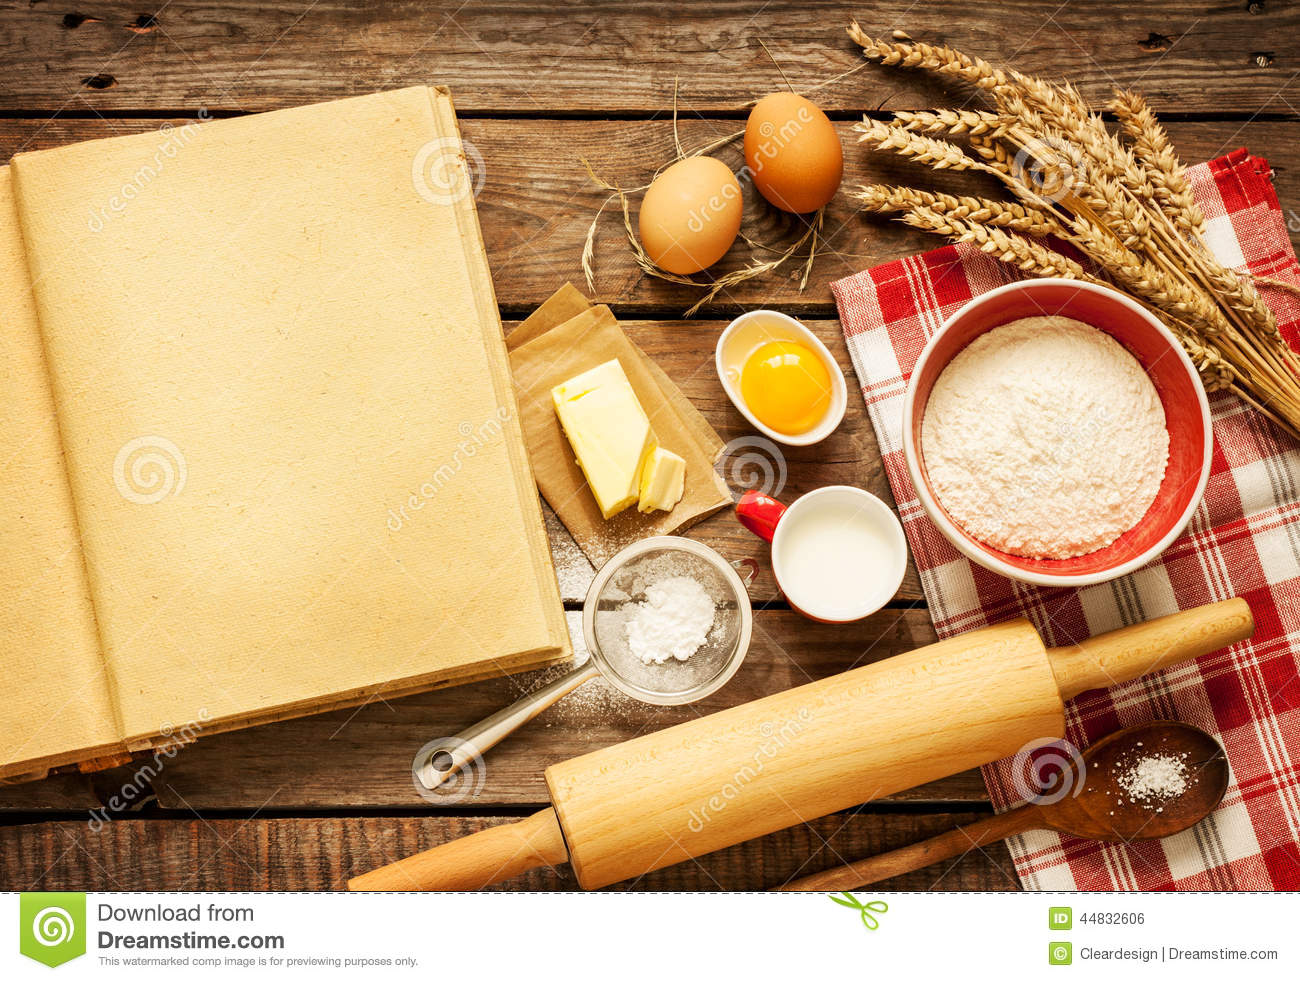 Rural Kitchen Baking Cake Ingredients And Blank Cook Book Stock Photo ...